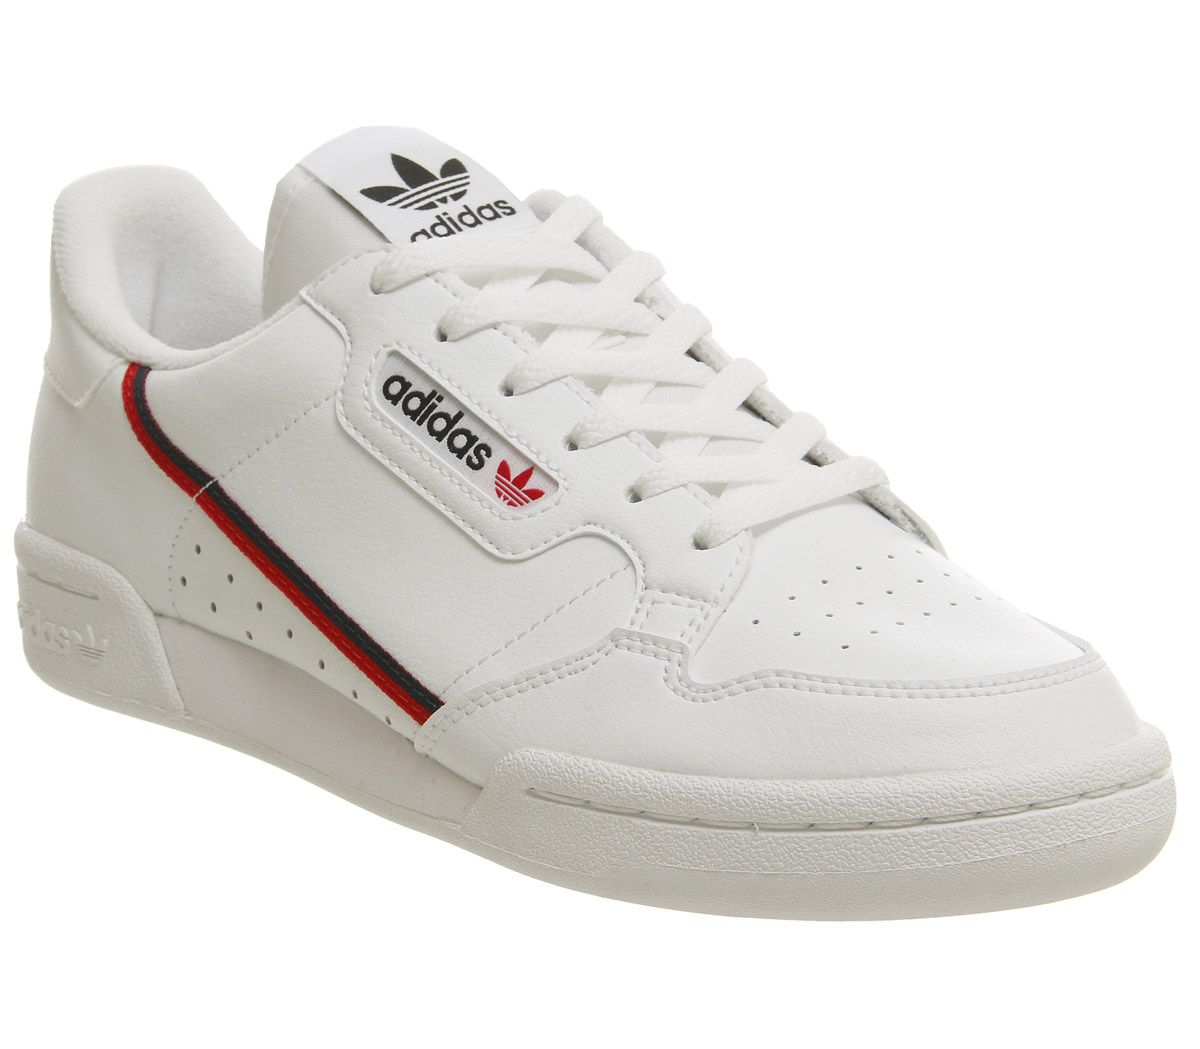 Continental 80s Junior Trainers | Trainers, Adidas, Scarlet